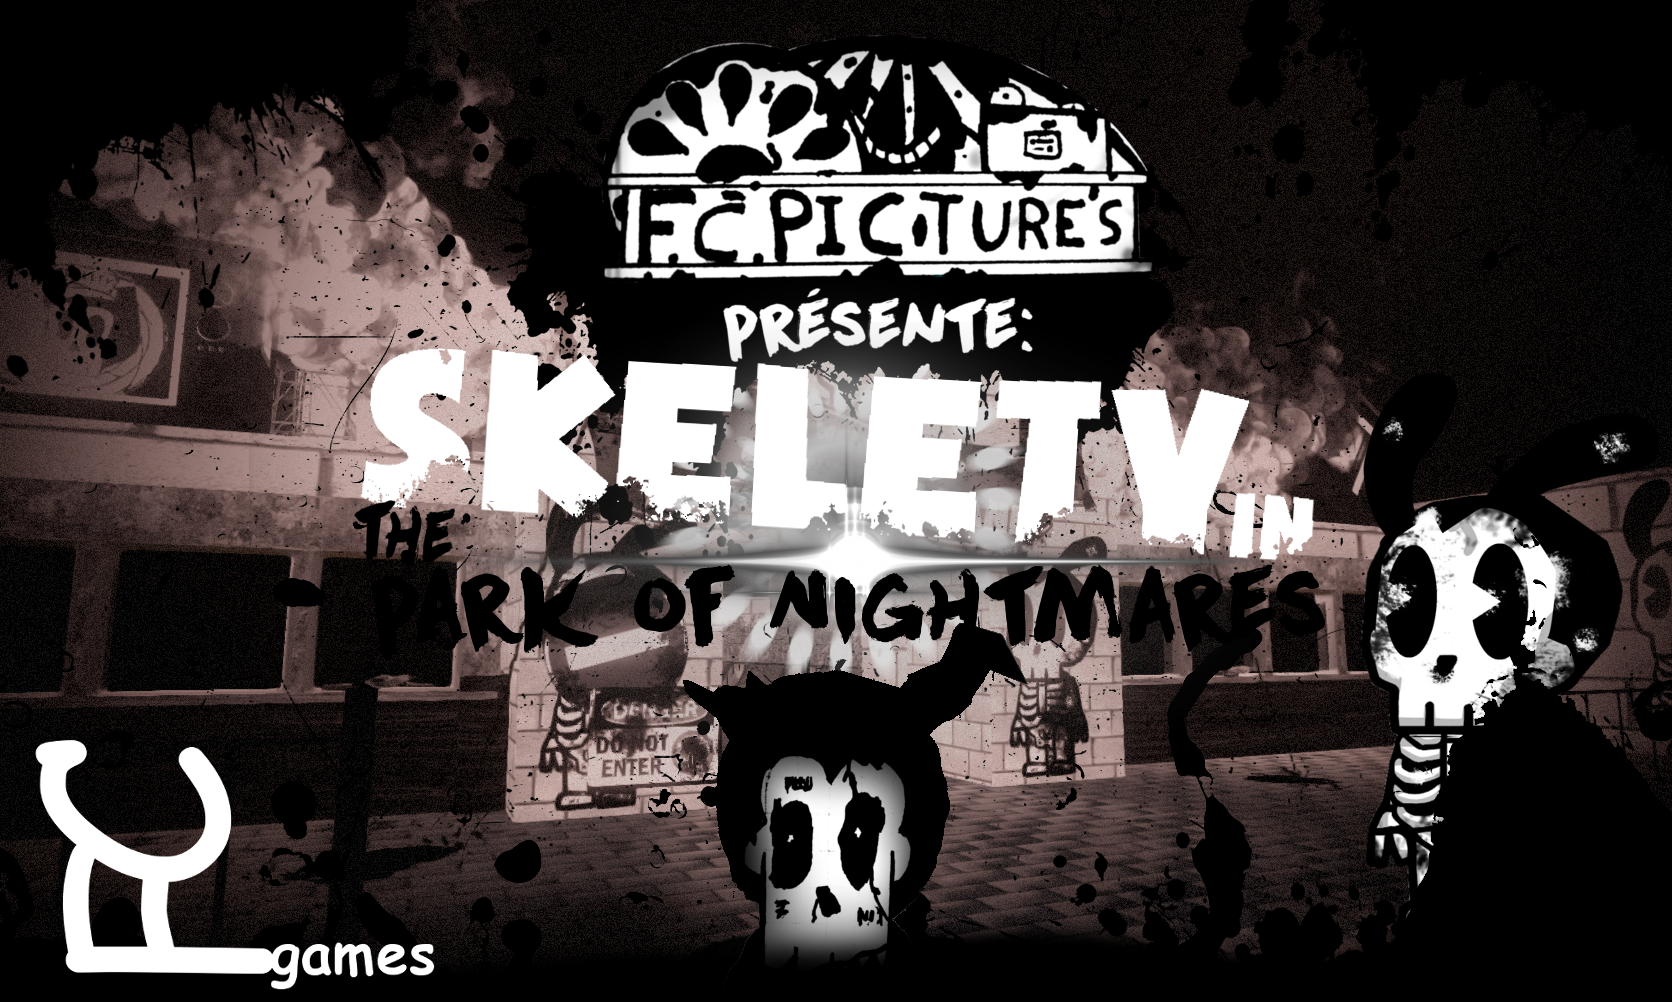 skelety in the park of nightmares